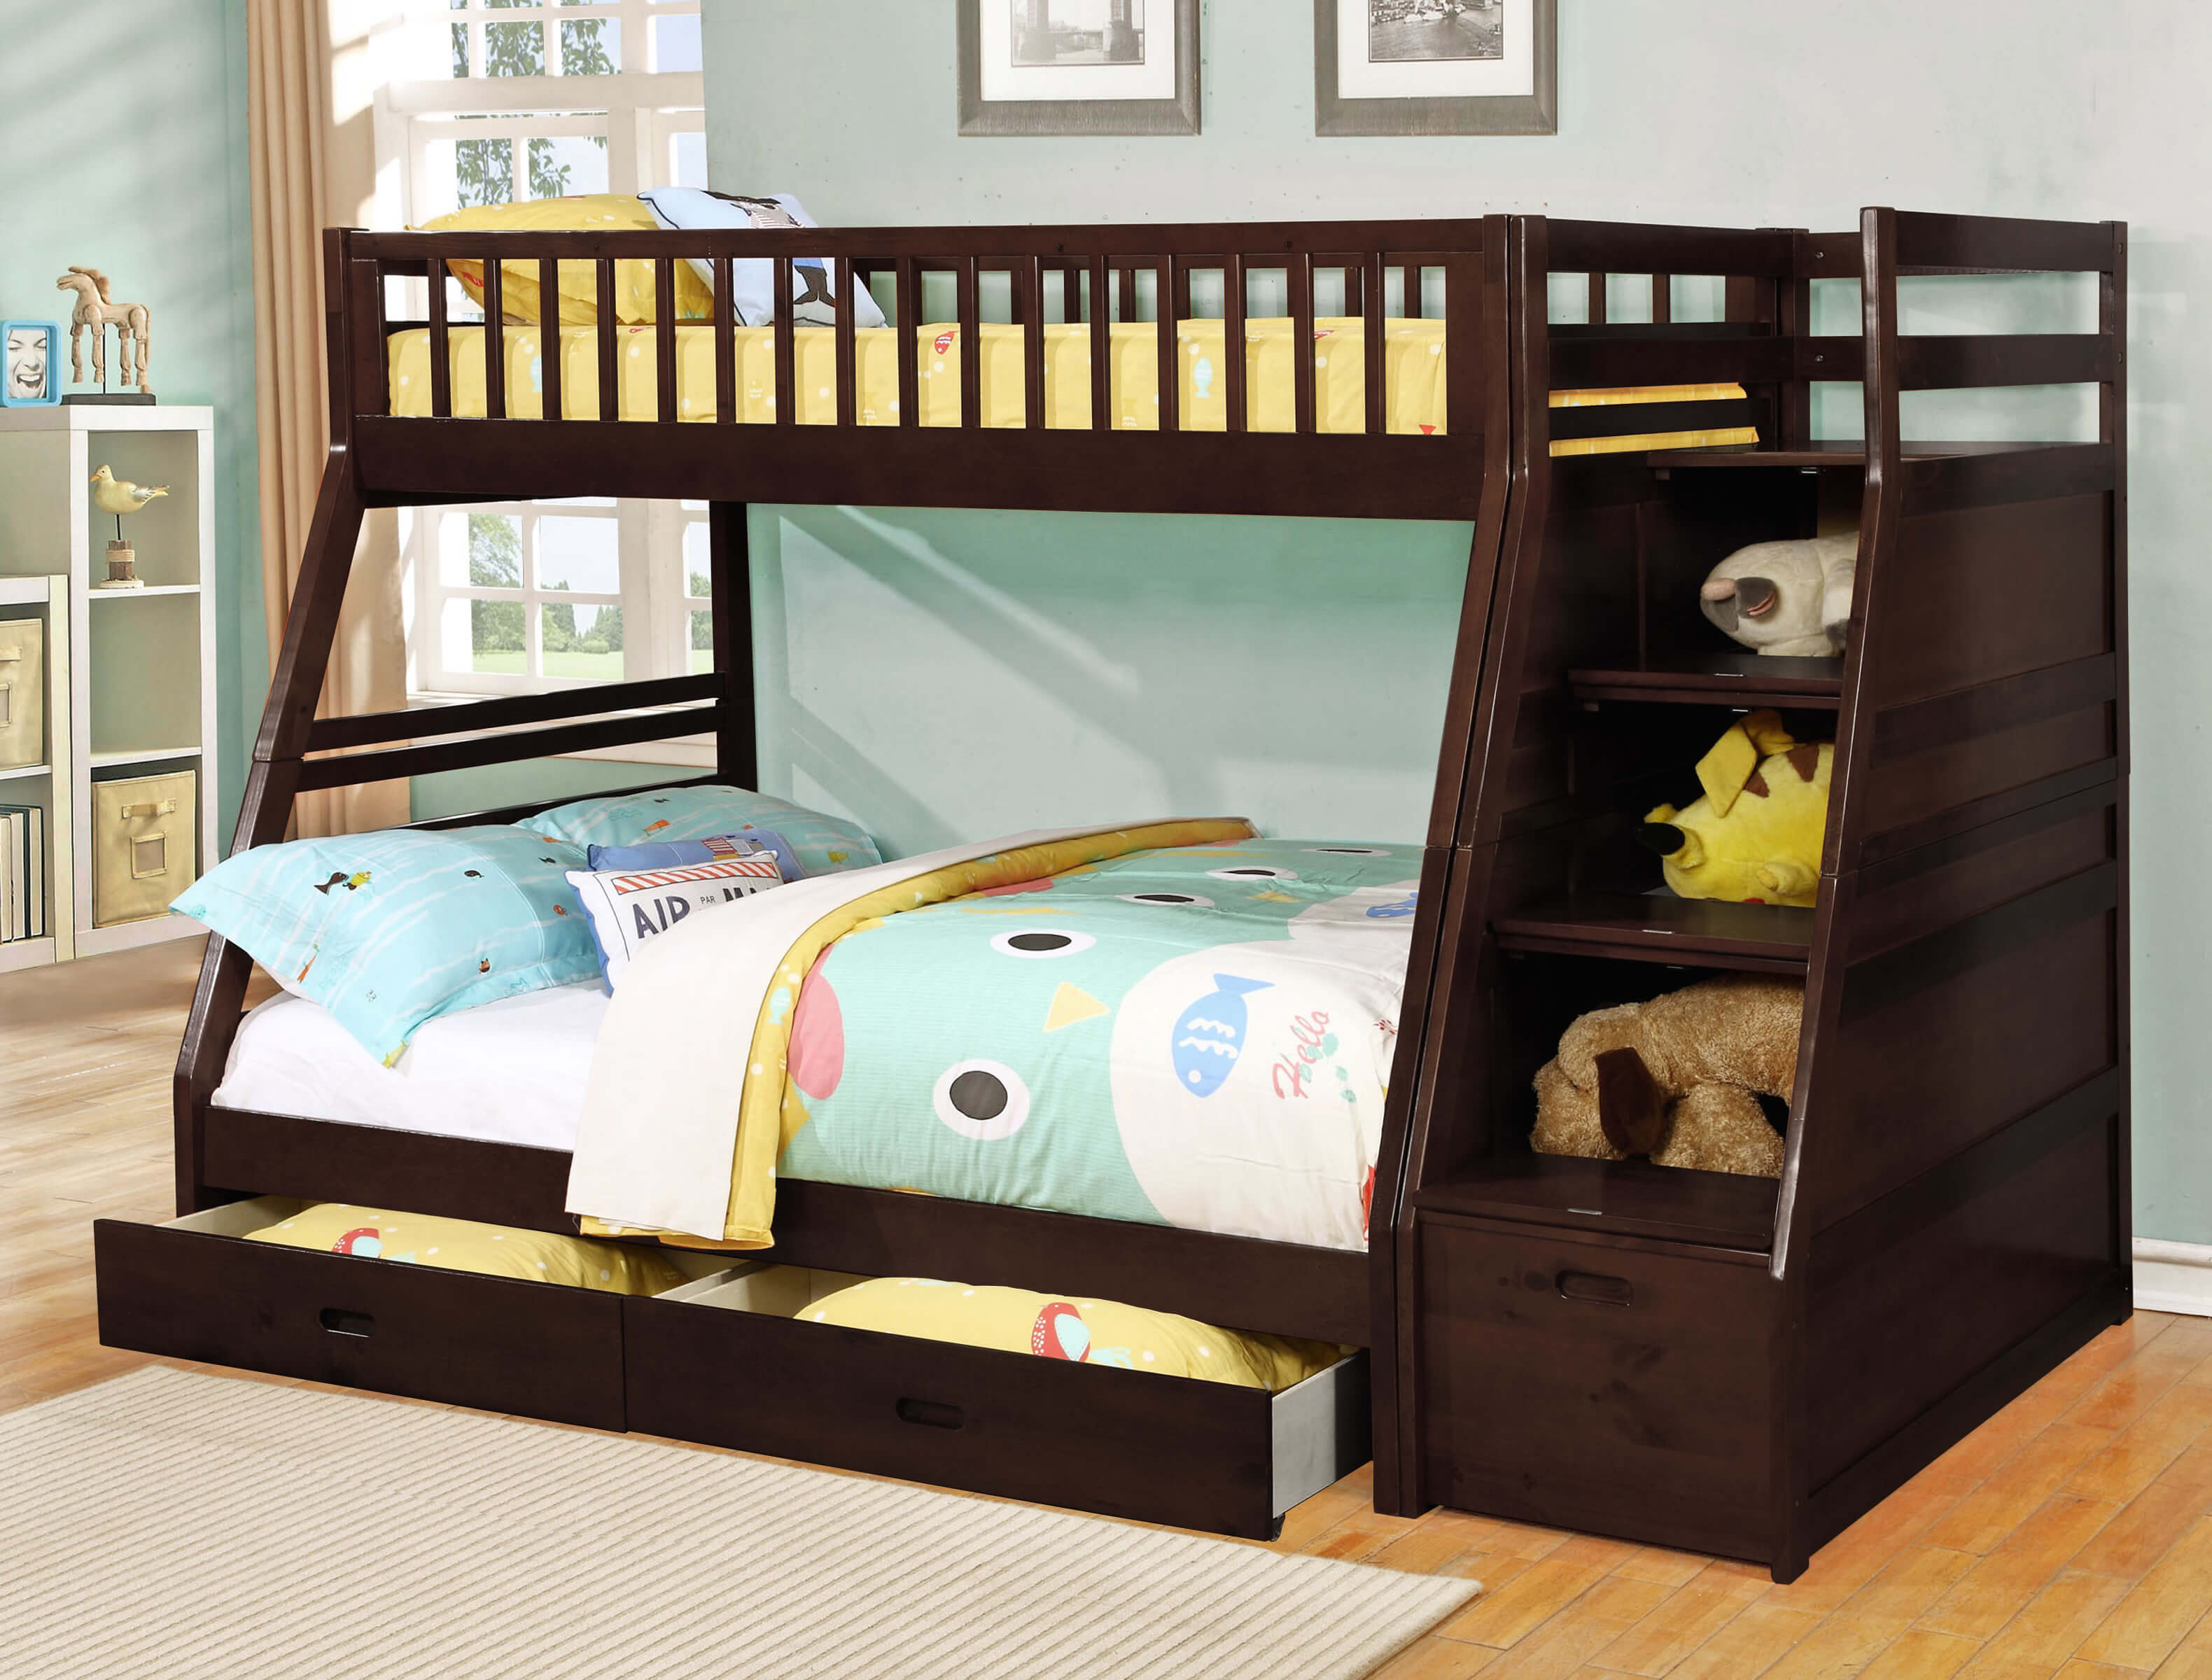 Tweepersoons Stapelbed 24 Designs Of Bunk Beds With Steps Kids Love These